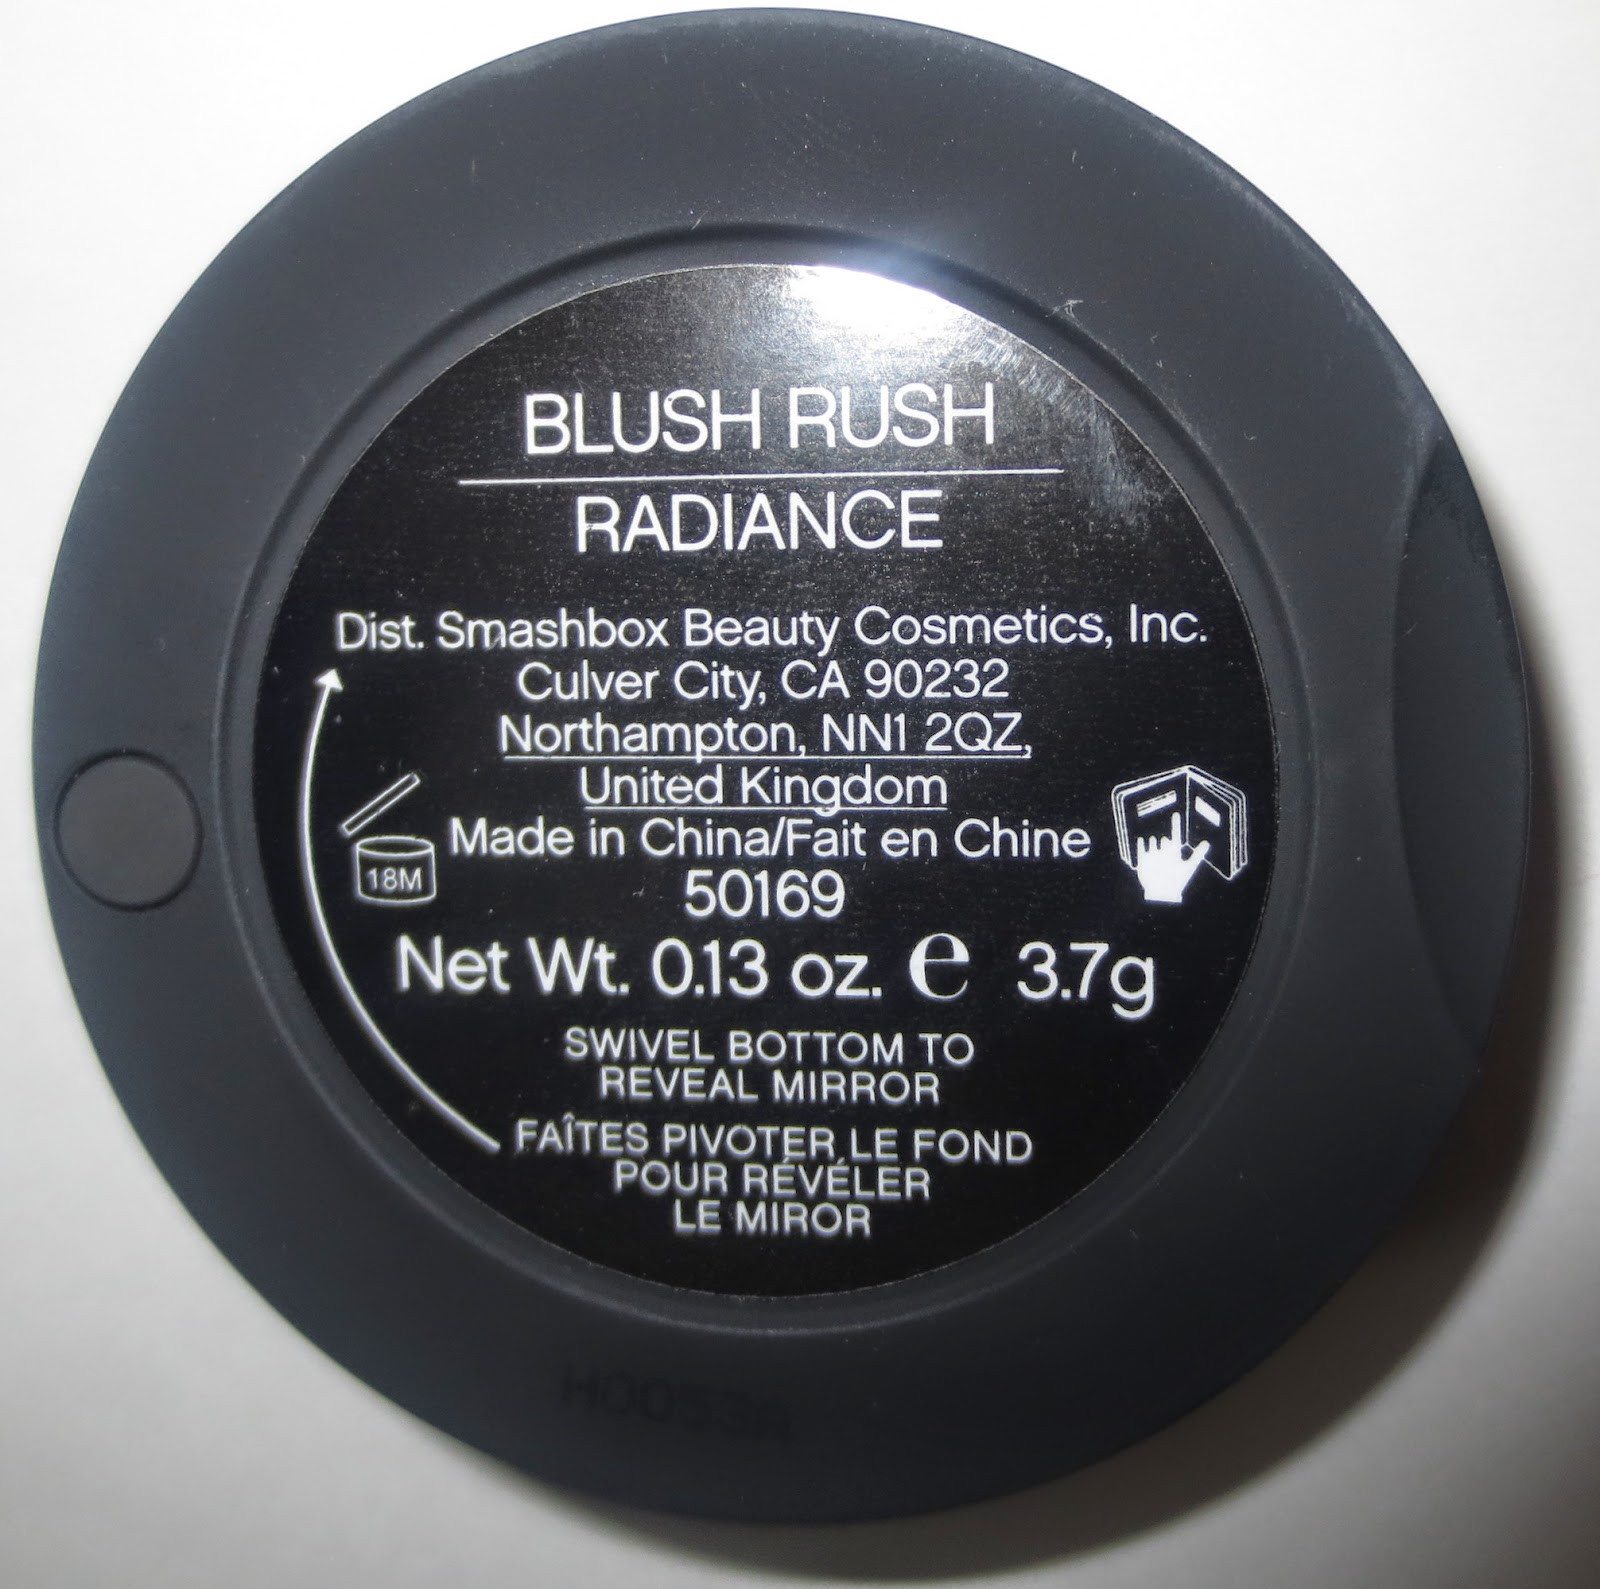 Smashbox Blush Rush in Radiance label